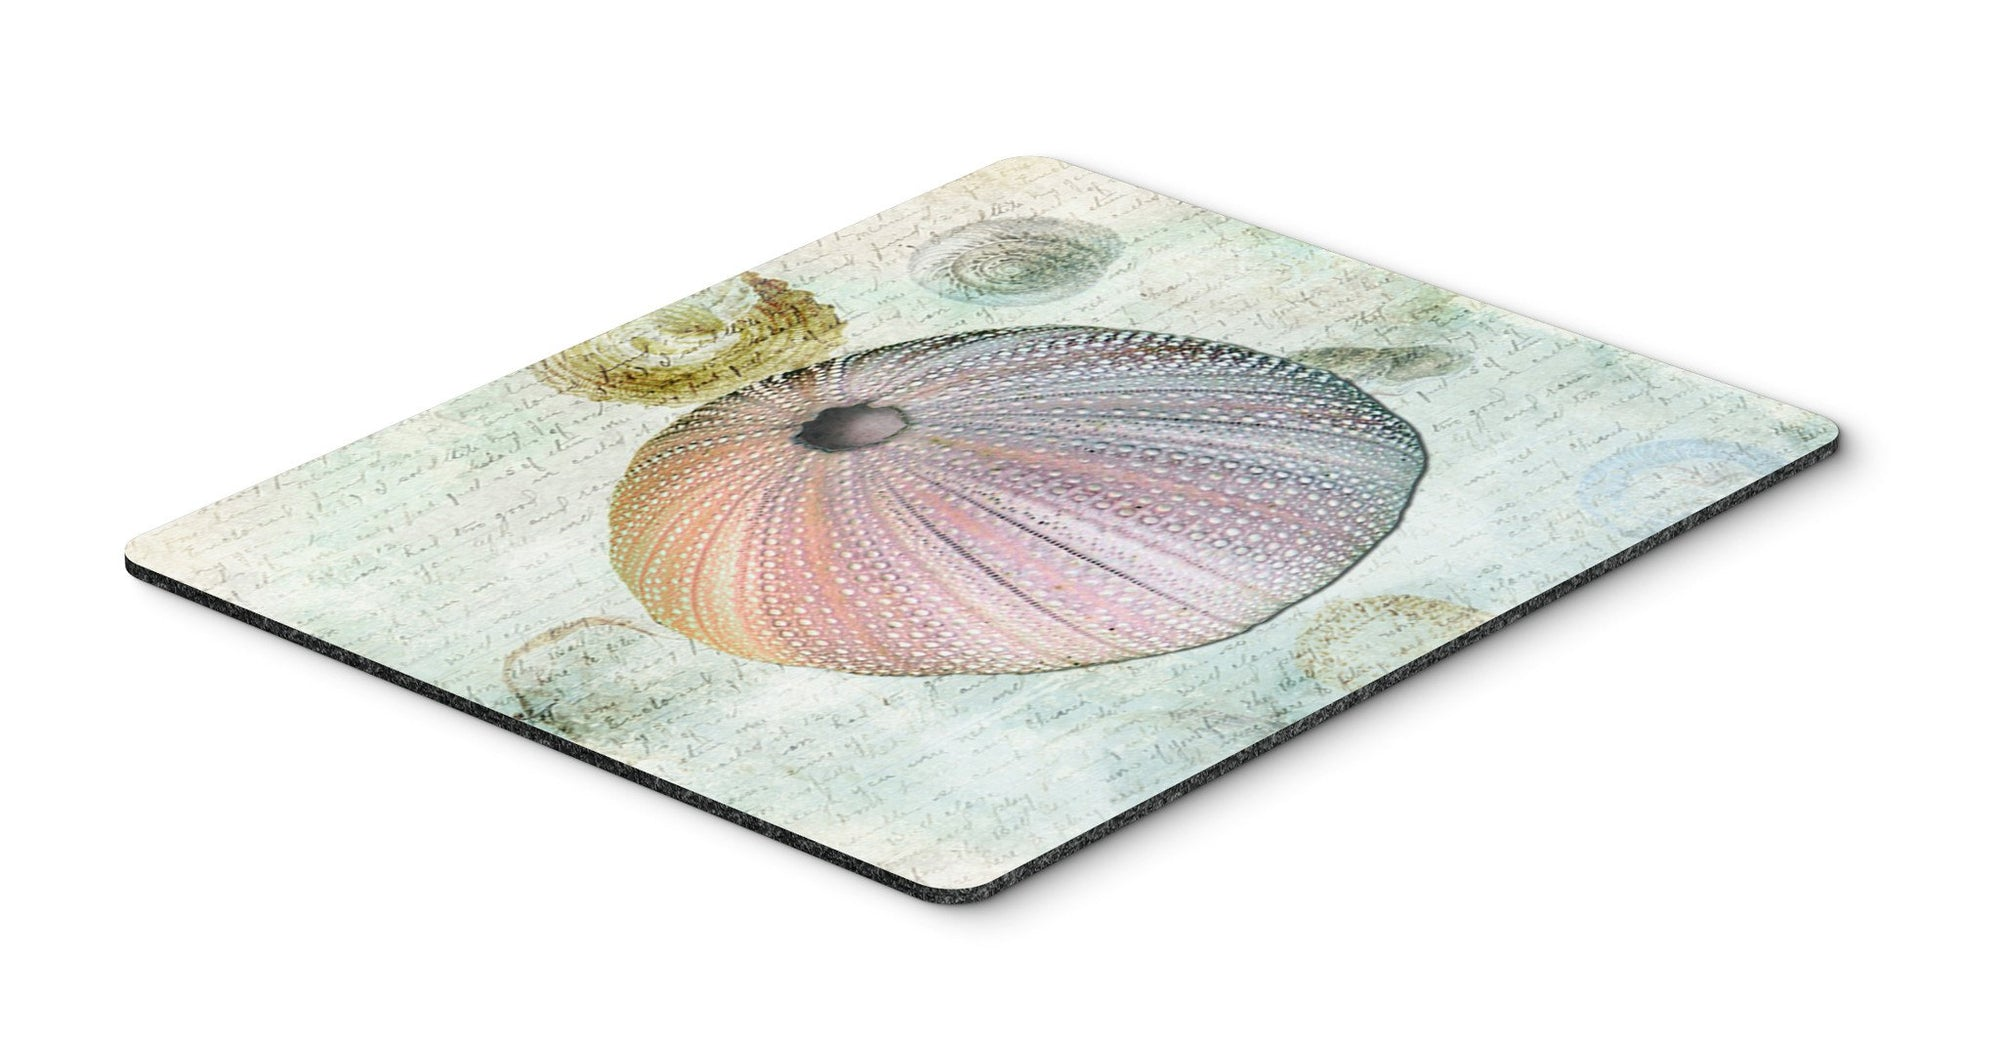 Buy this Anemone  Mouse Pad, Hot Pad or Trivet